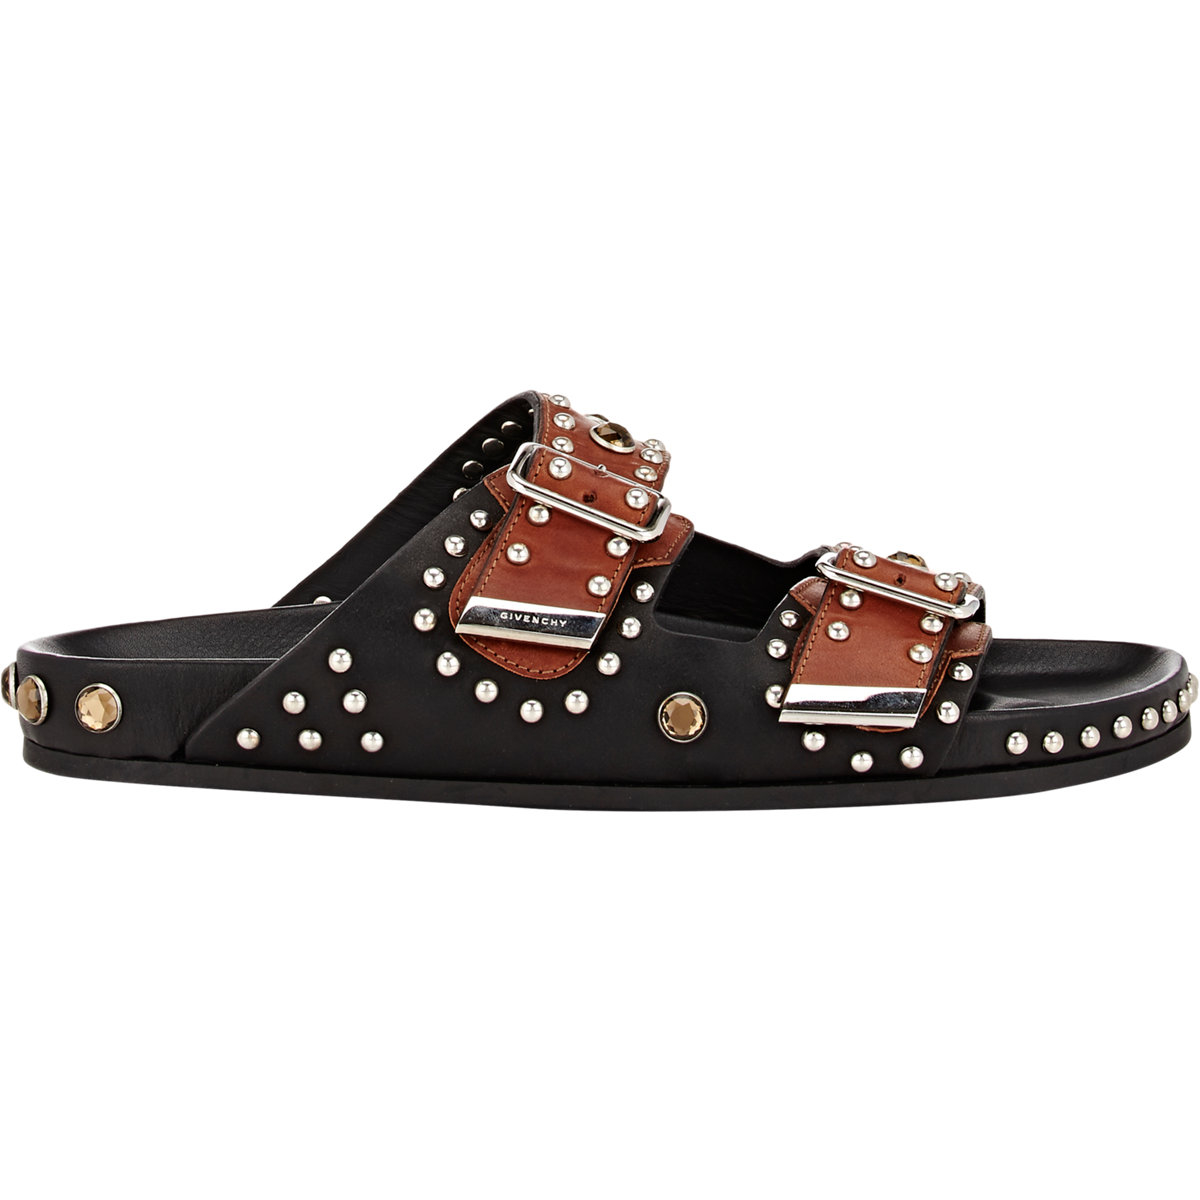 2c6721fc6587 Givenchy Studded Double-buckle Sandals in Black for Men - Lyst